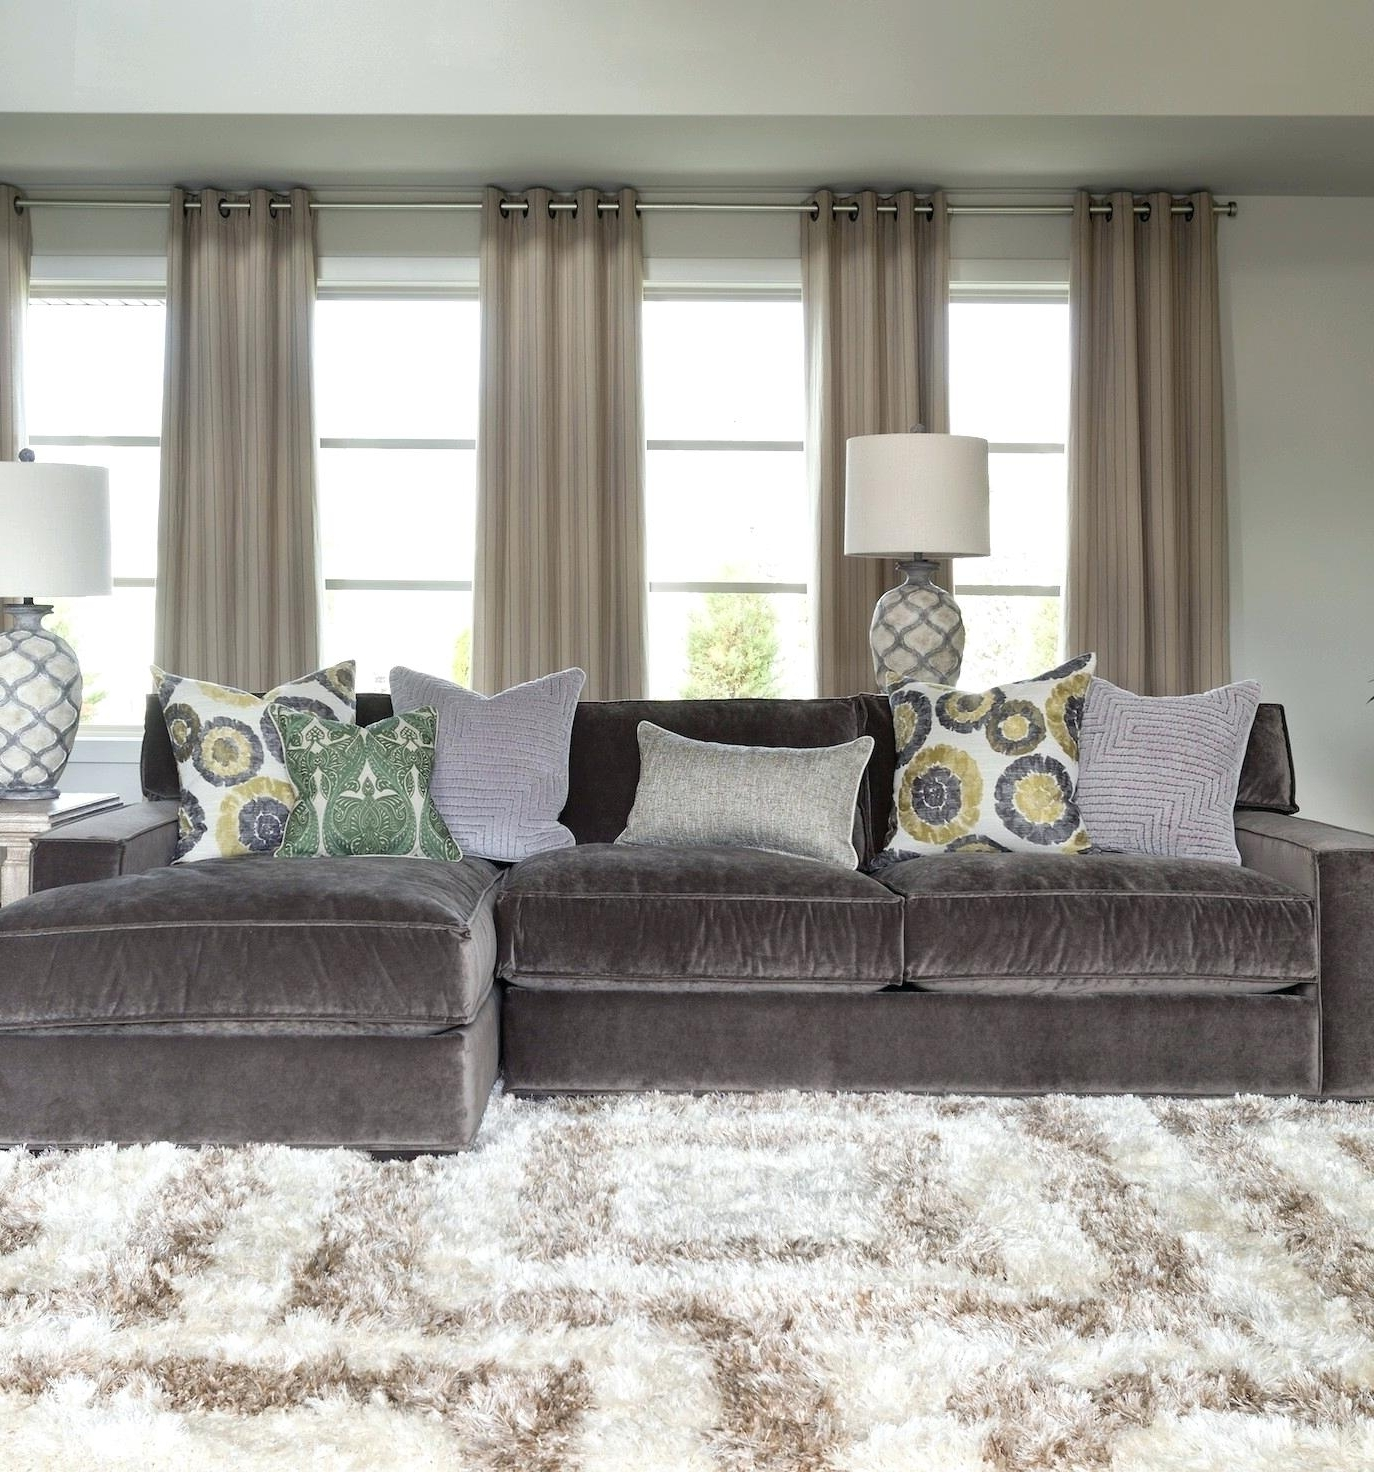 Stunning Restoration Hardware Sectional Ideas – Liltigertoo Pertaining To Well Liked Restoration Hardware Sectional Sofas (View 12 of 20)